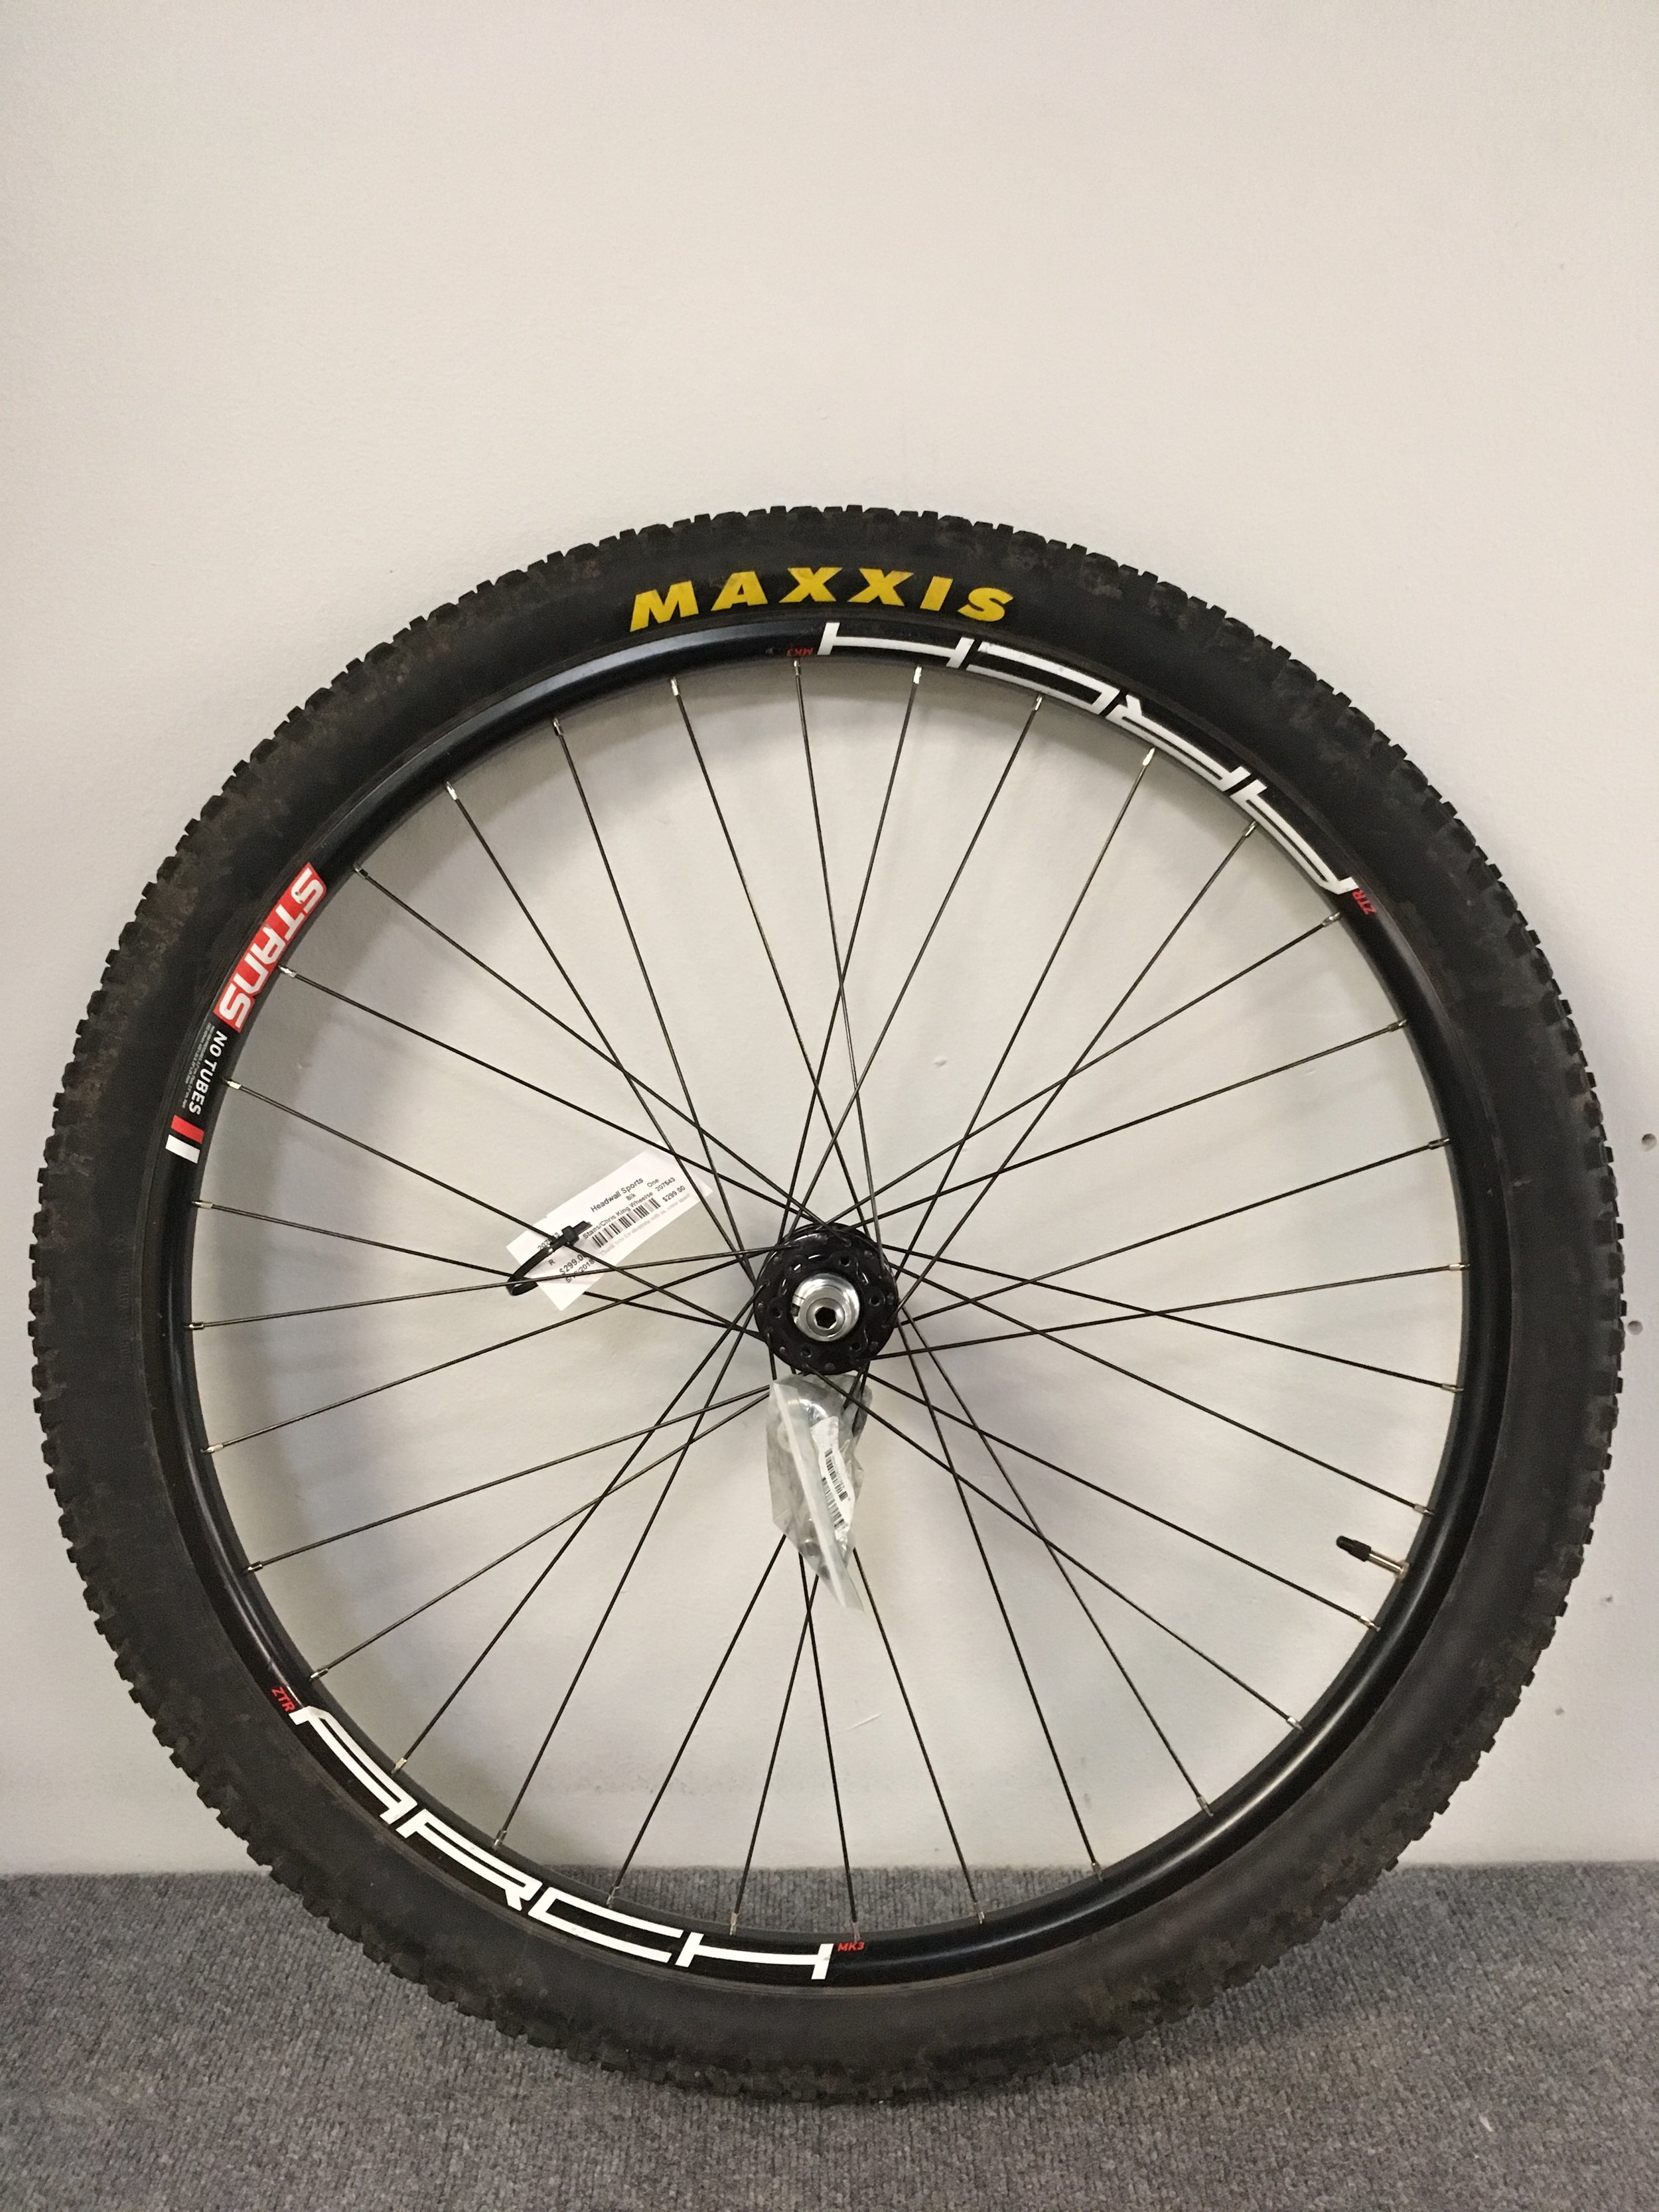 Here's a rear wheel set featuring Chris King ISO 135 Fun Bolt rear hub, stans arch rim, and Maxxis Ardent tire. The MSRP value is well over $600 but we can get you rolling for $300!